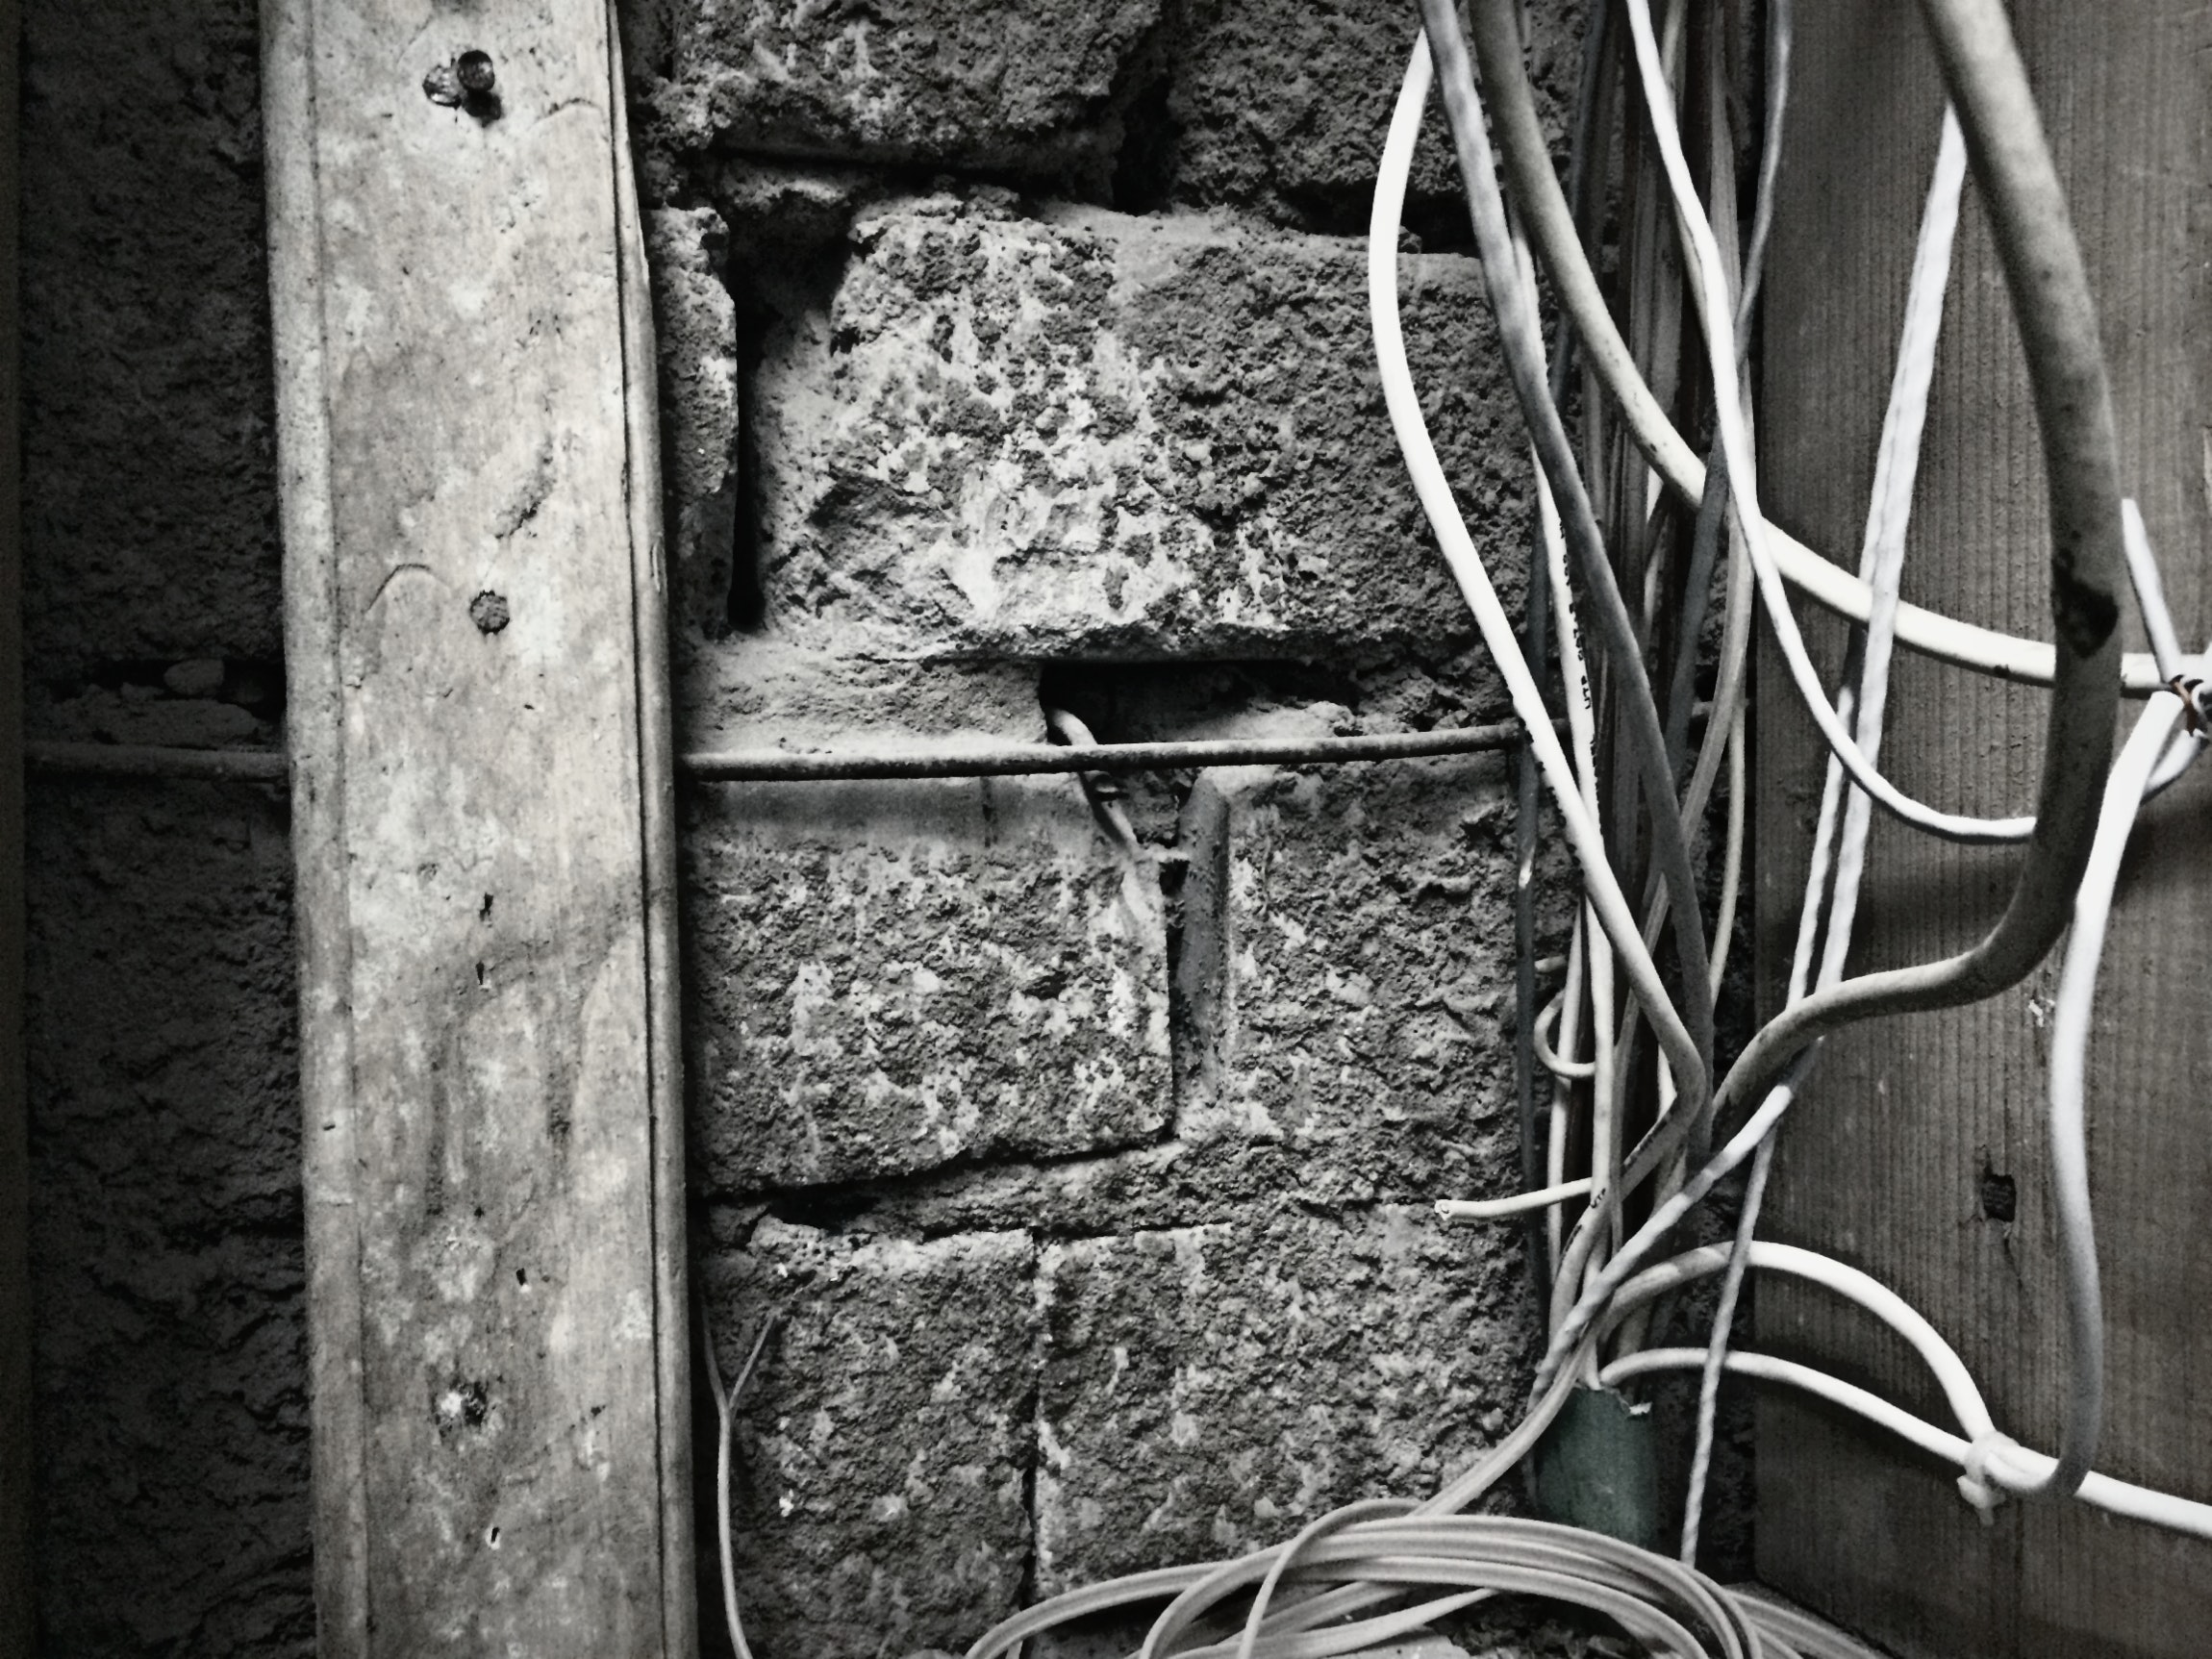 Free stock photo of black and white, brick wall, electrical wires